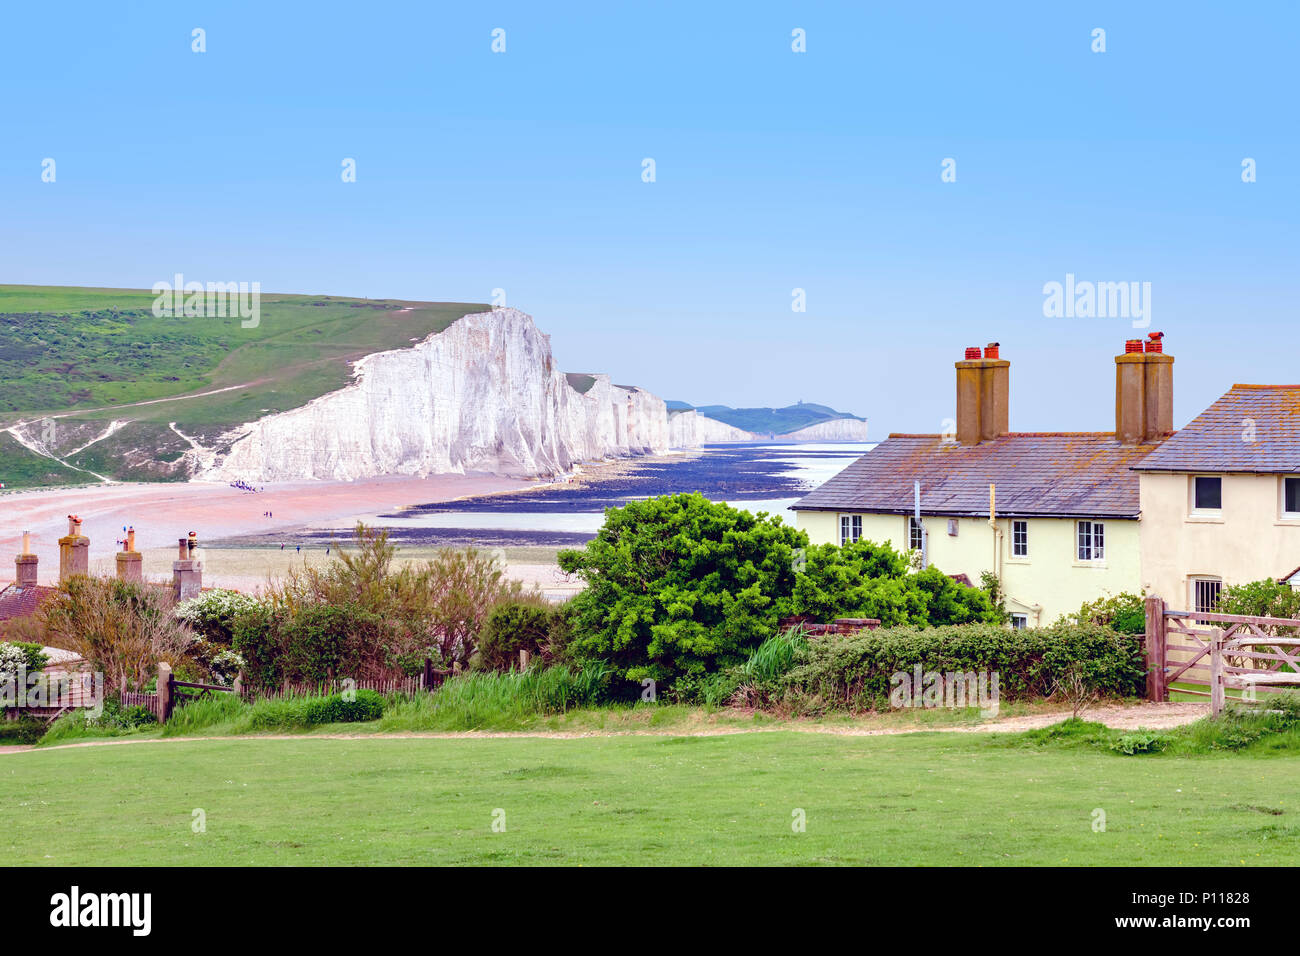 coastguard-cottages-at-seaford-head-with